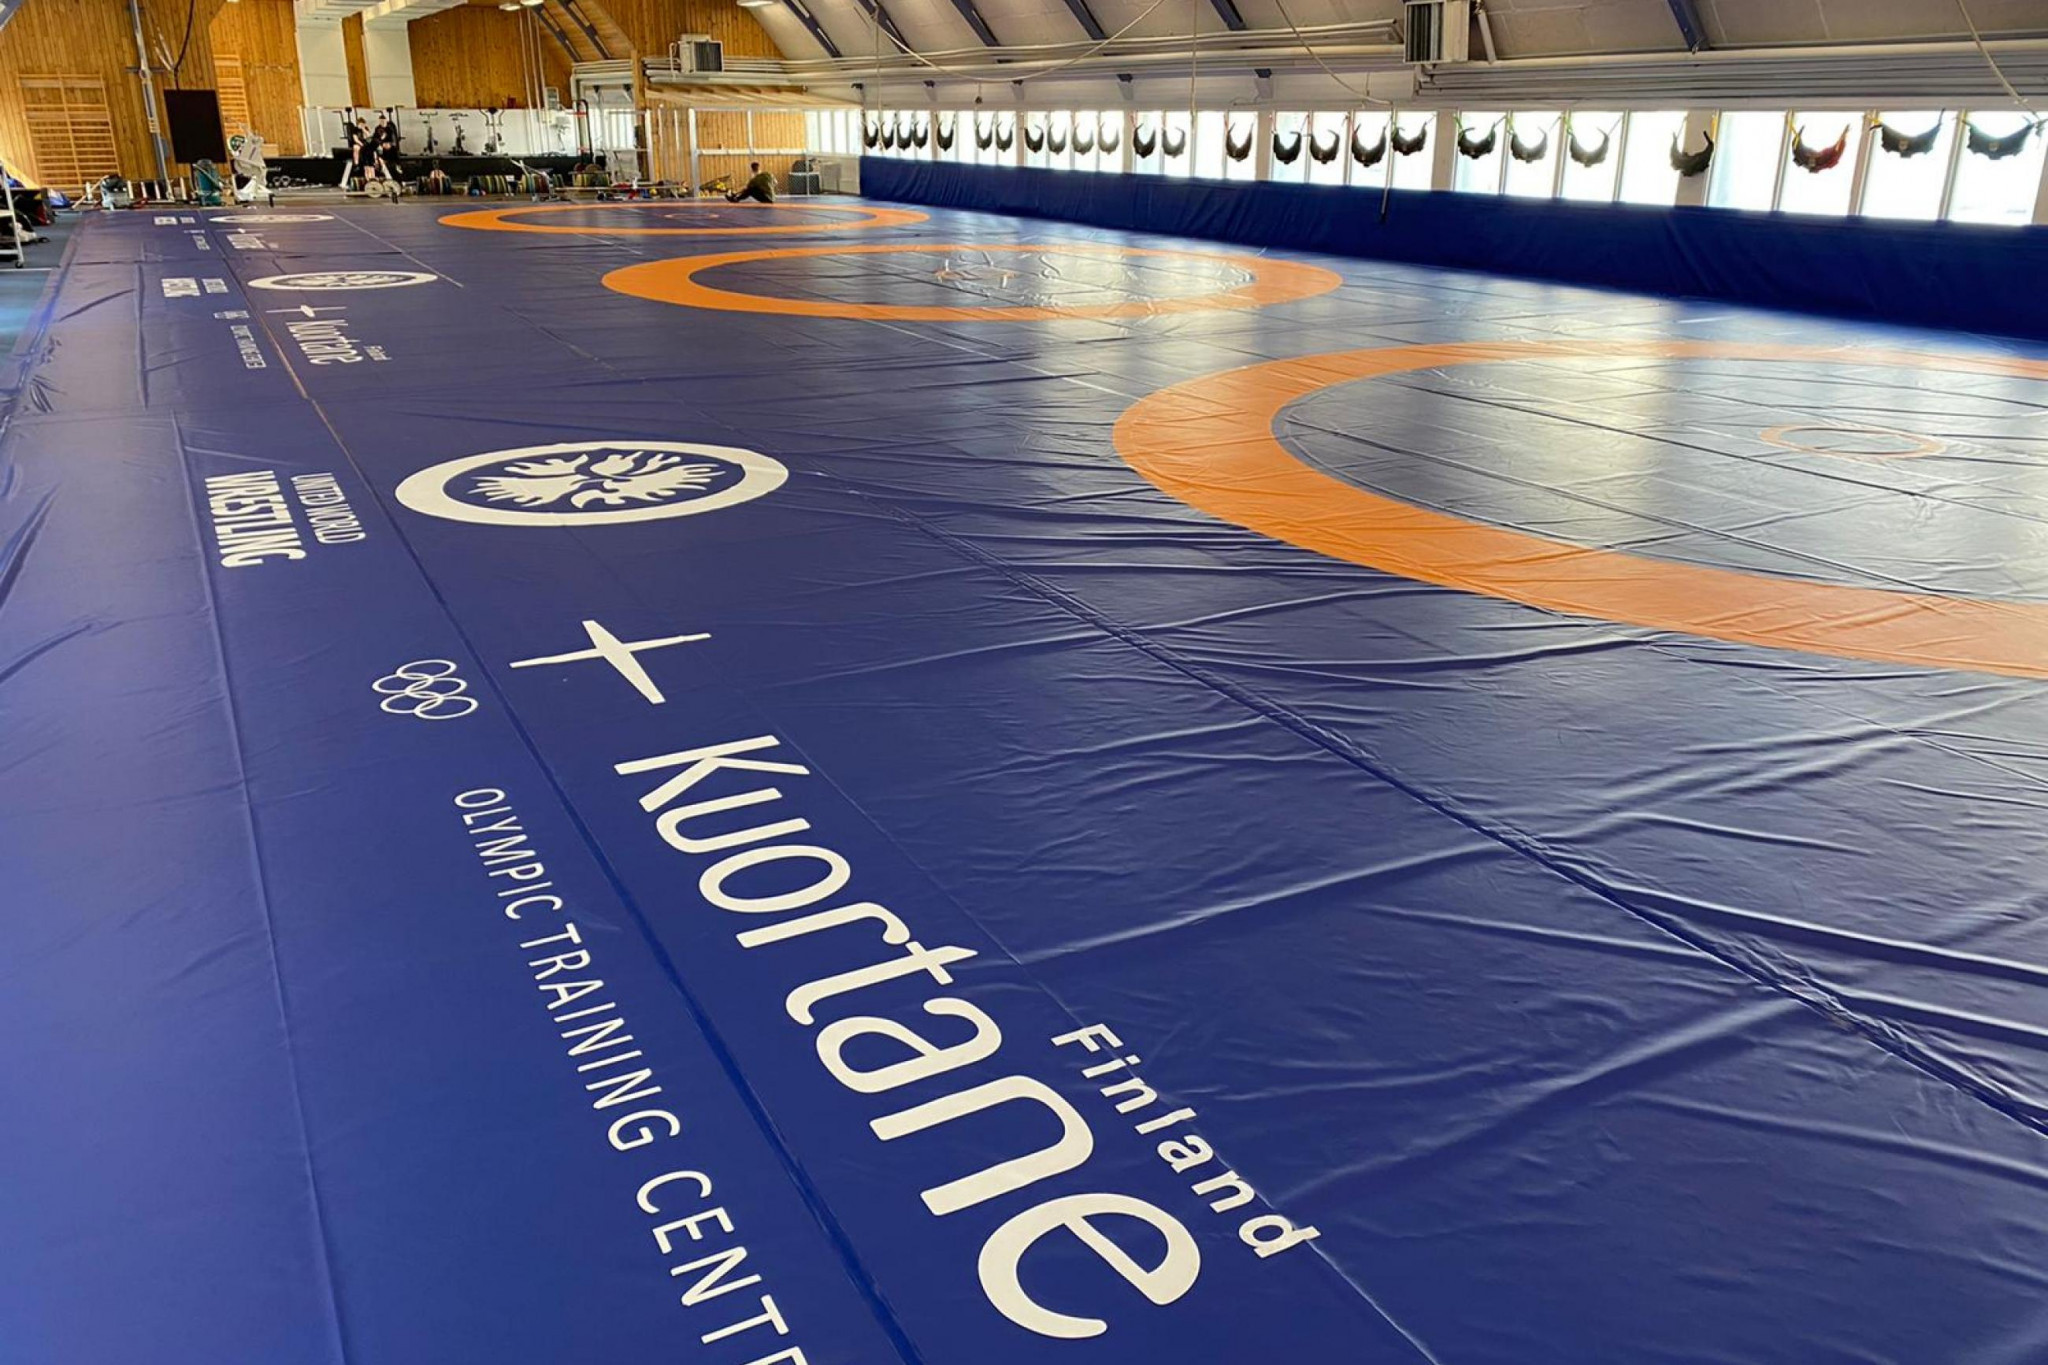 Finnish wrestling training centre completes expansion